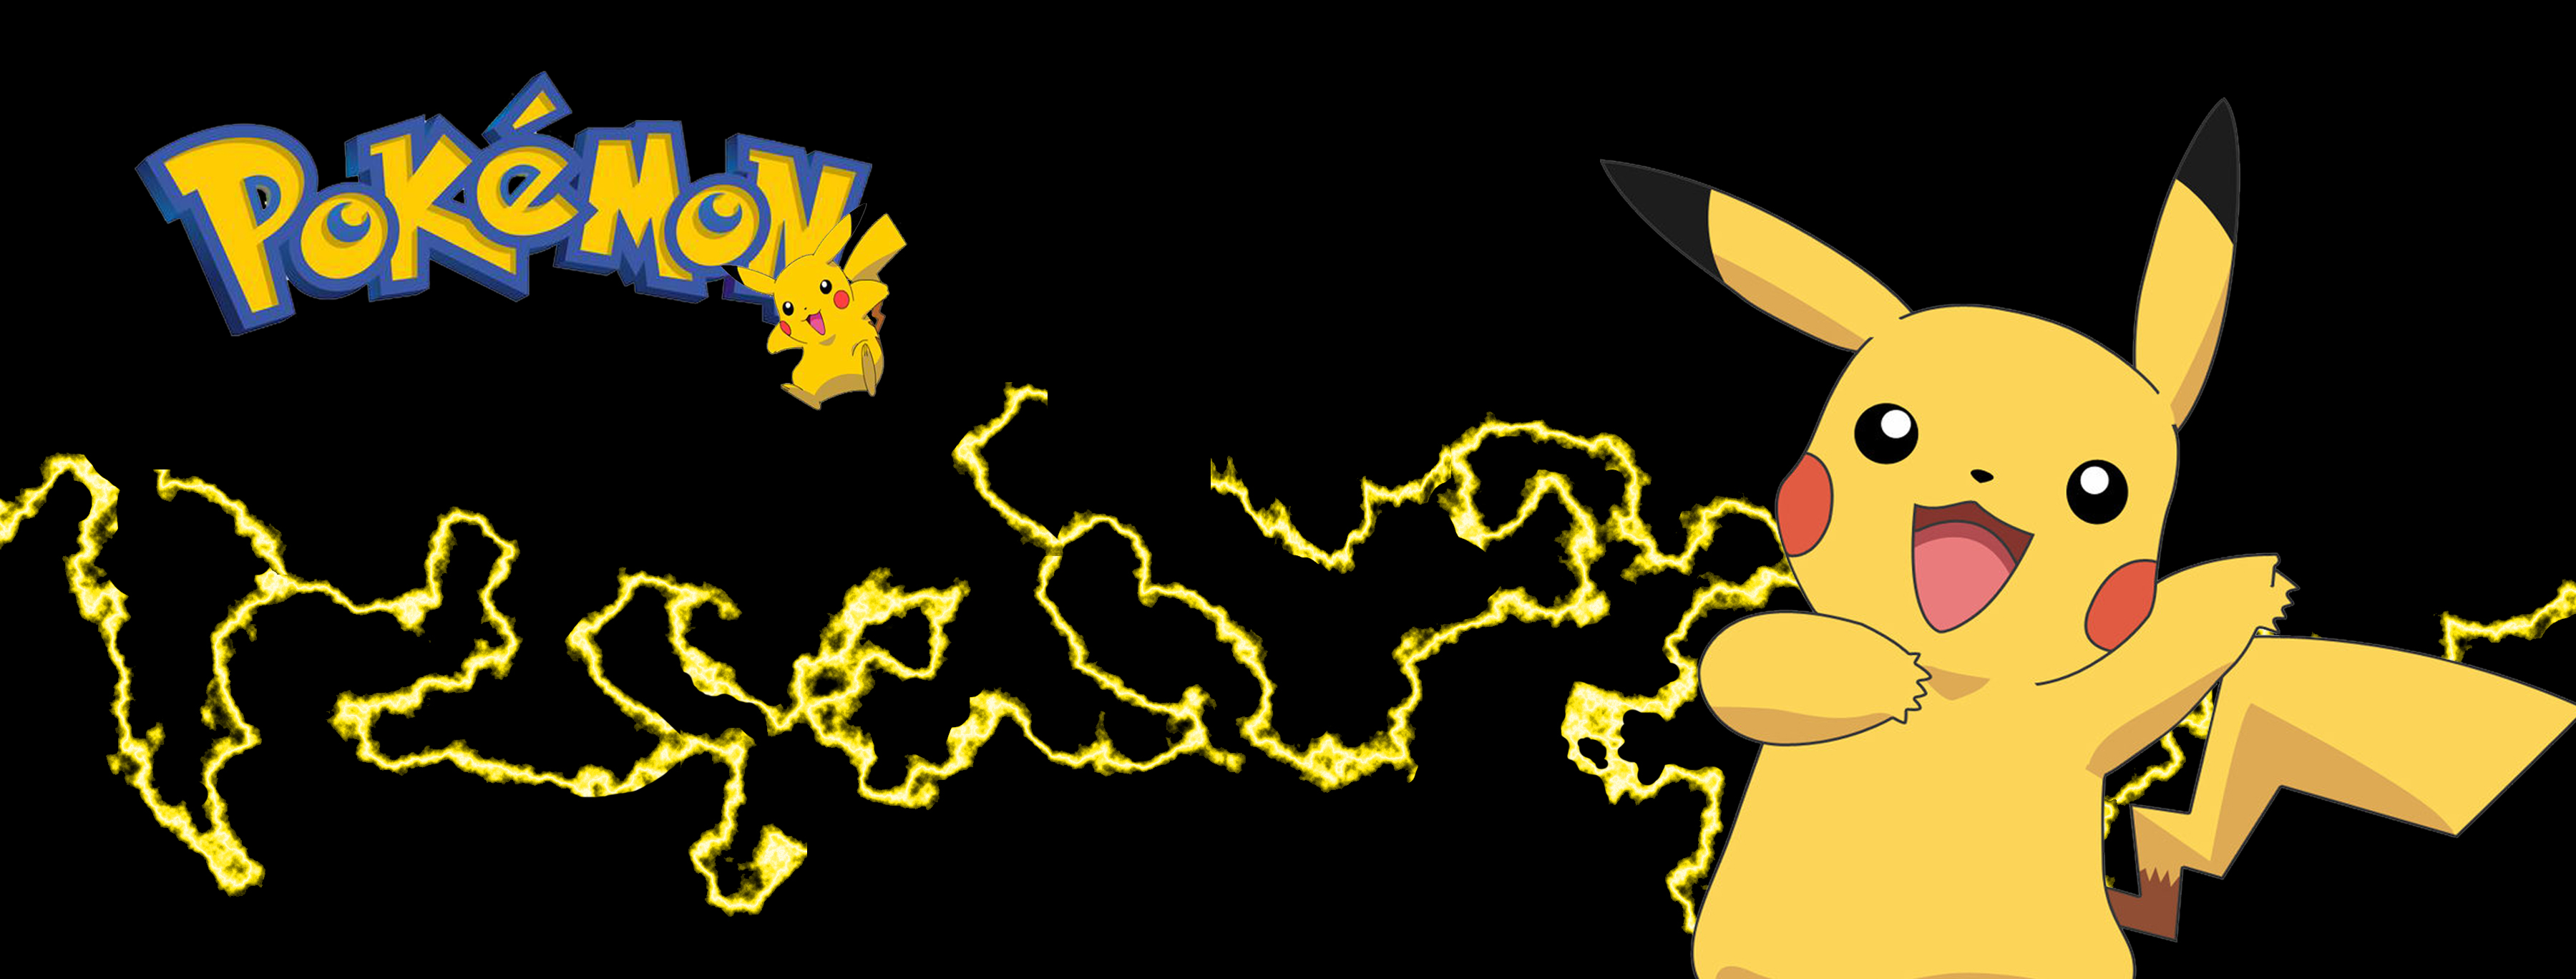 Group Of Electric Pikachu Wallpaper